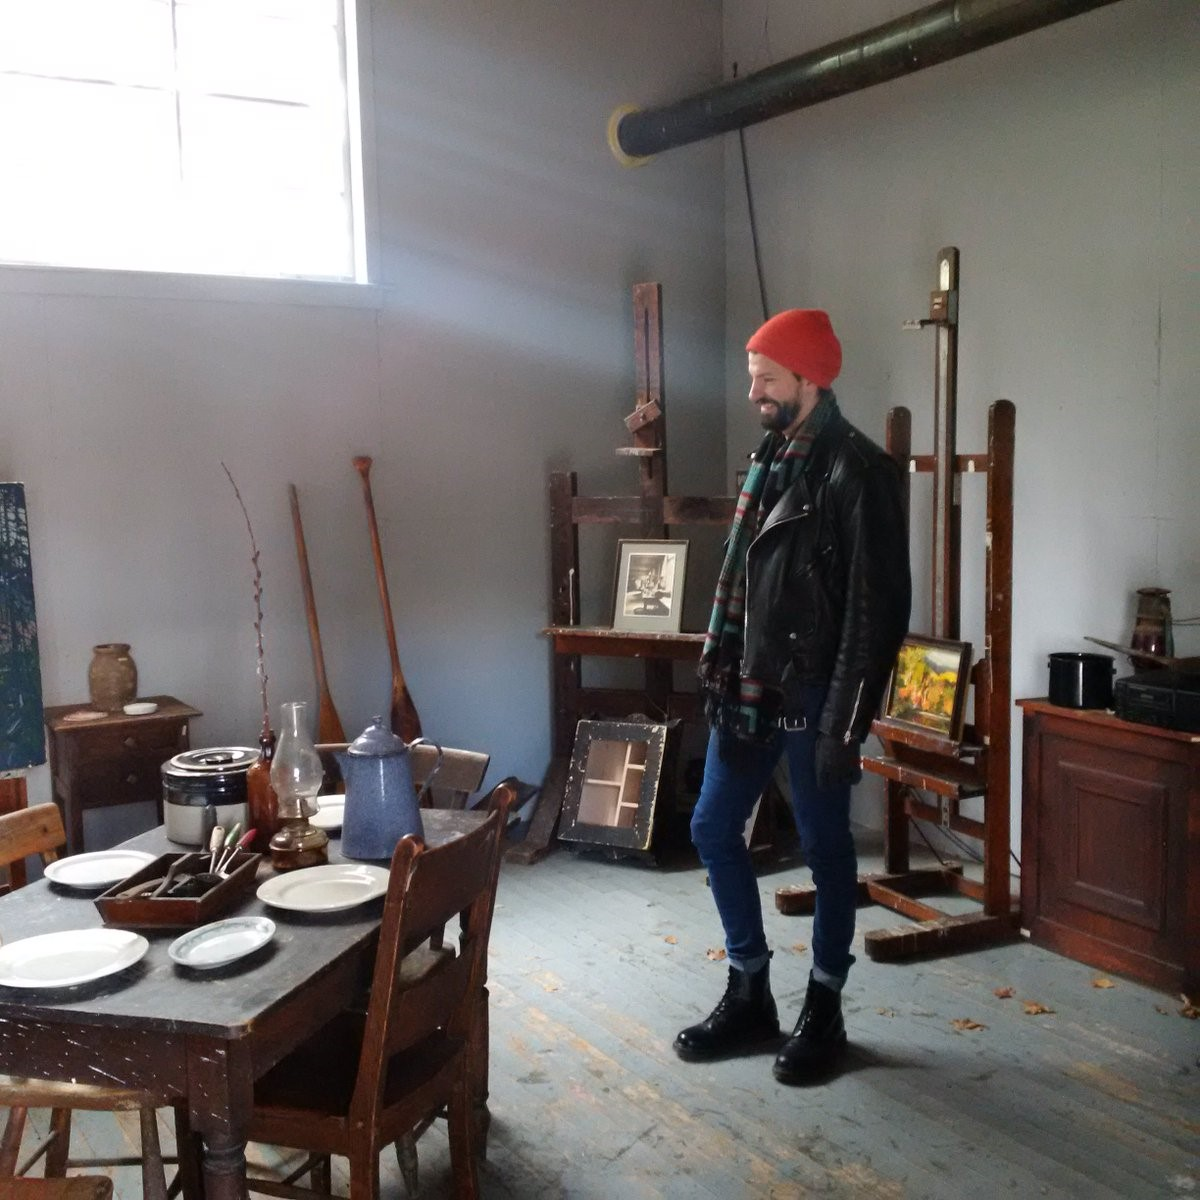 photo of man wearing a red hat in an artist's studio. Light from upper window streaming in